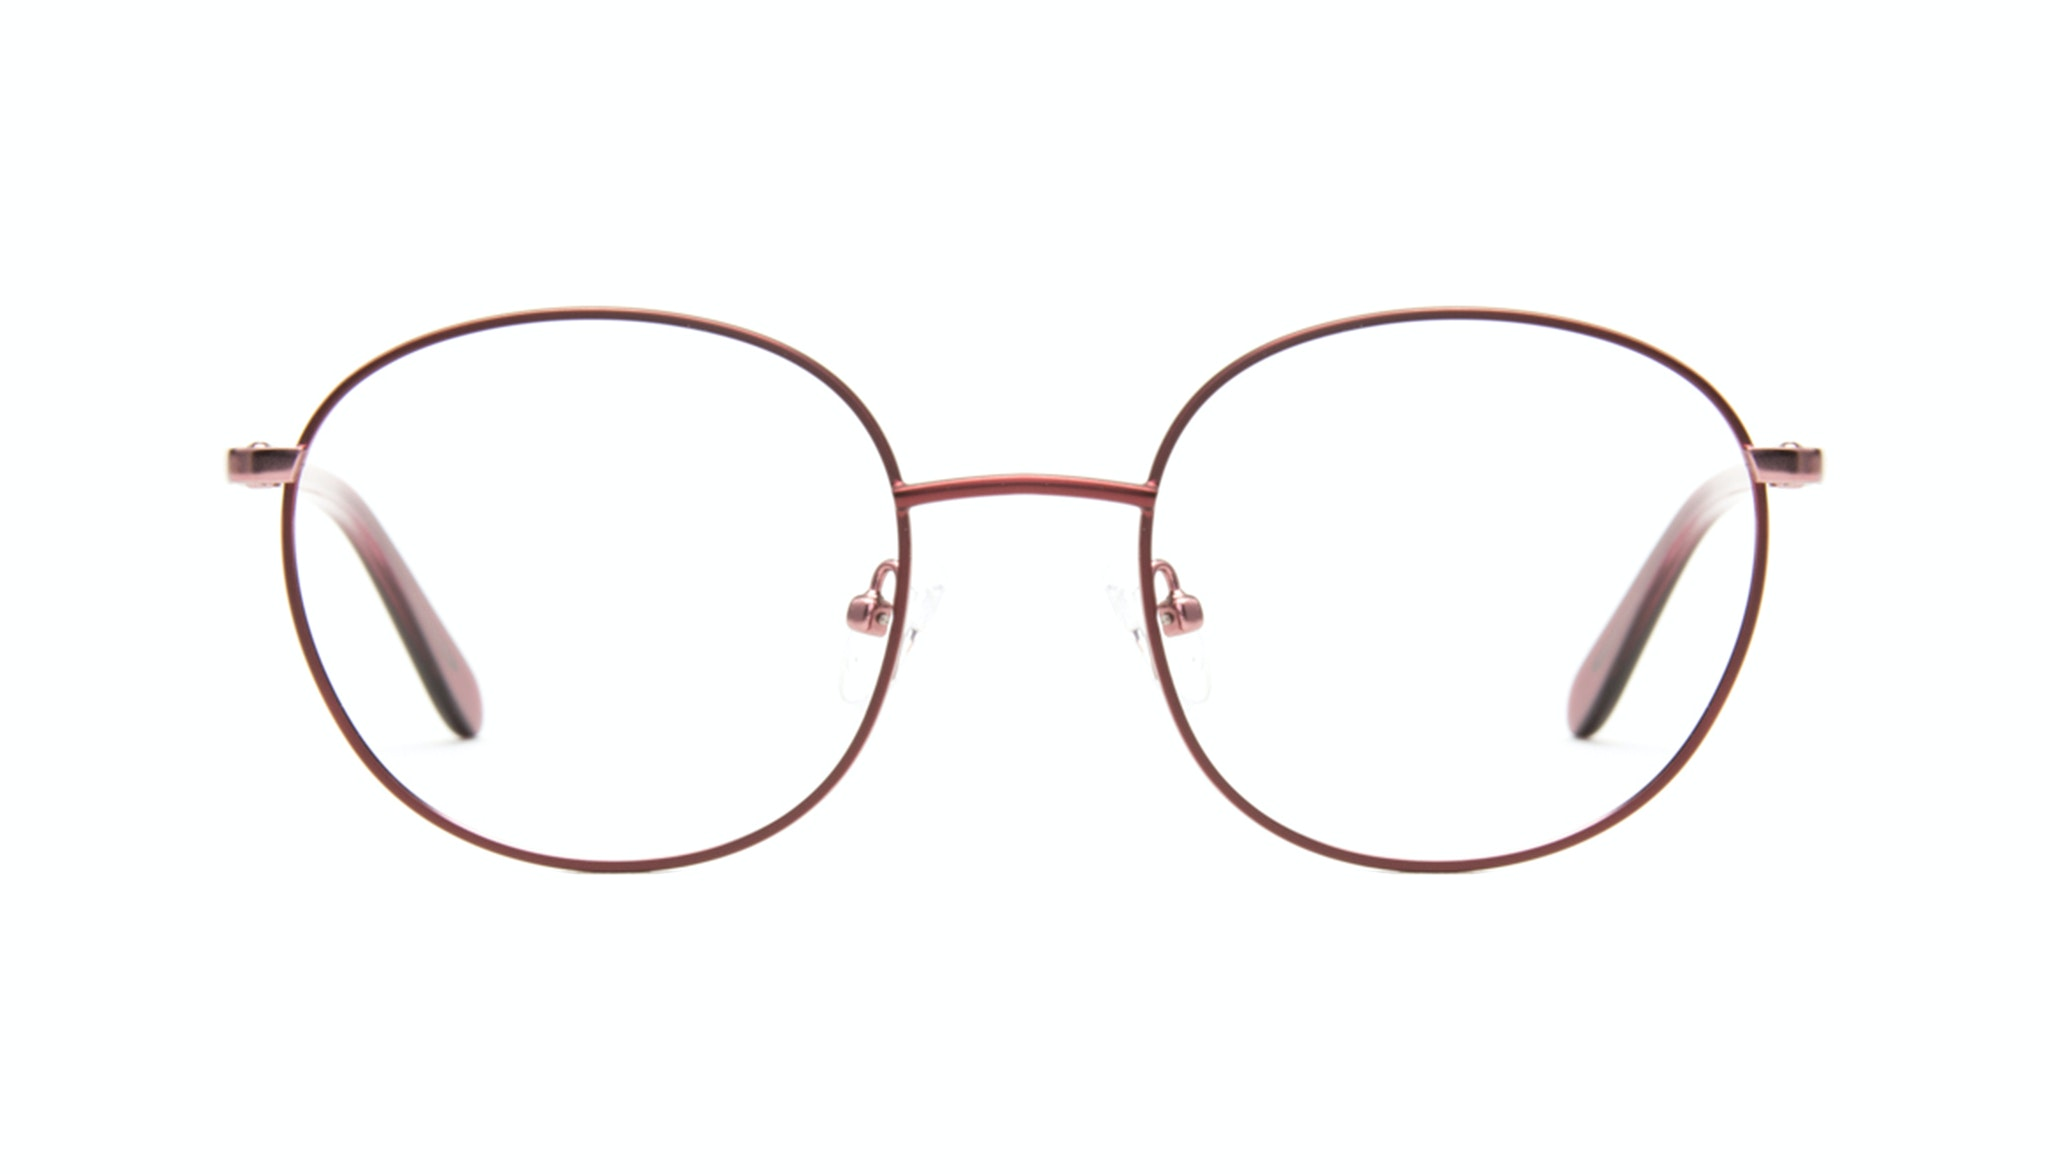 Affordable Fashion Glasses Round Eyeglasses Women Joy Cranberry